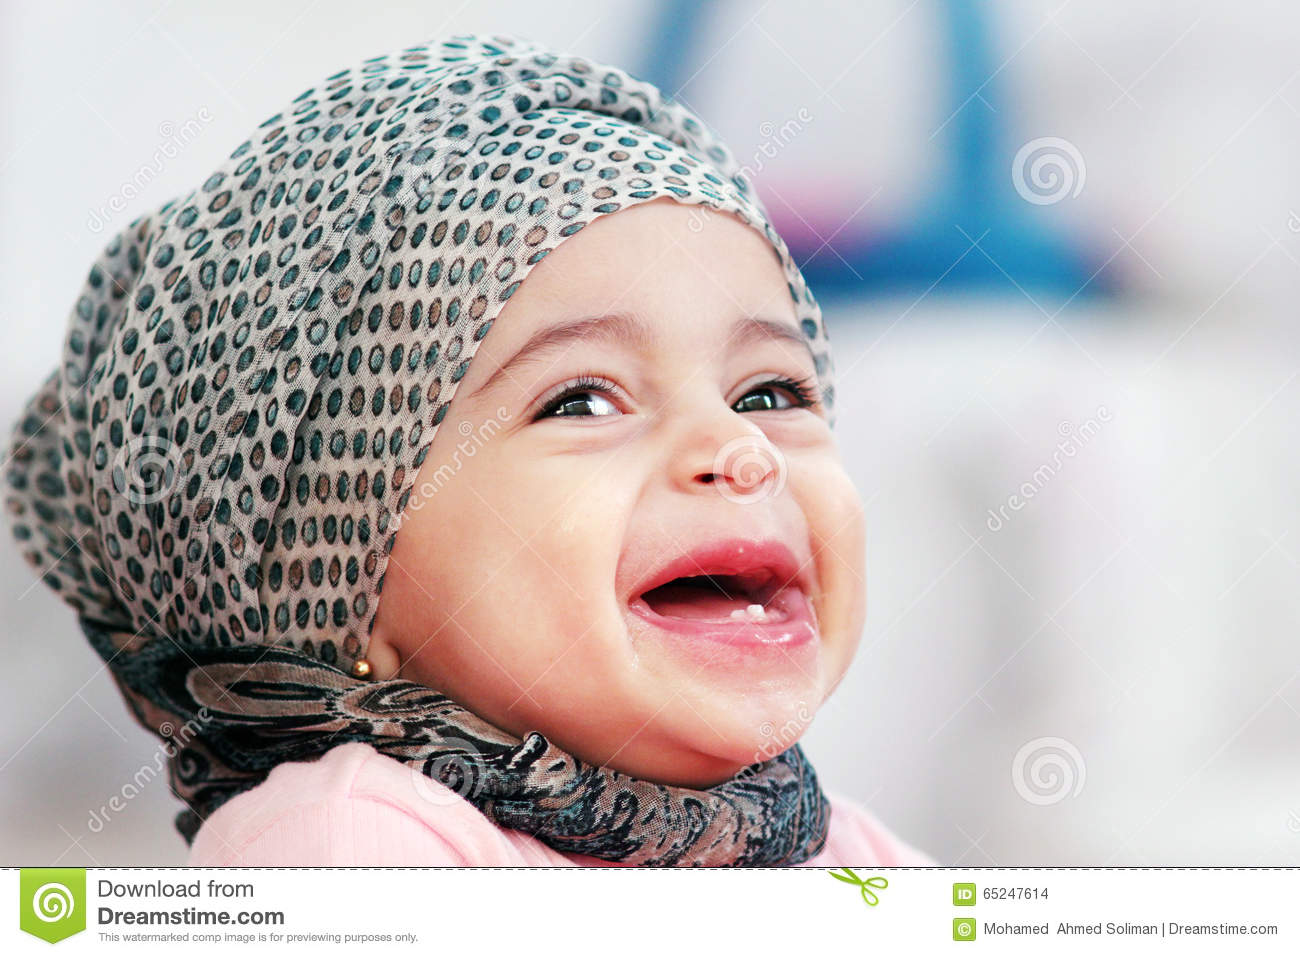 laughing arab muslim baby girl stock photo - image of cute, girl